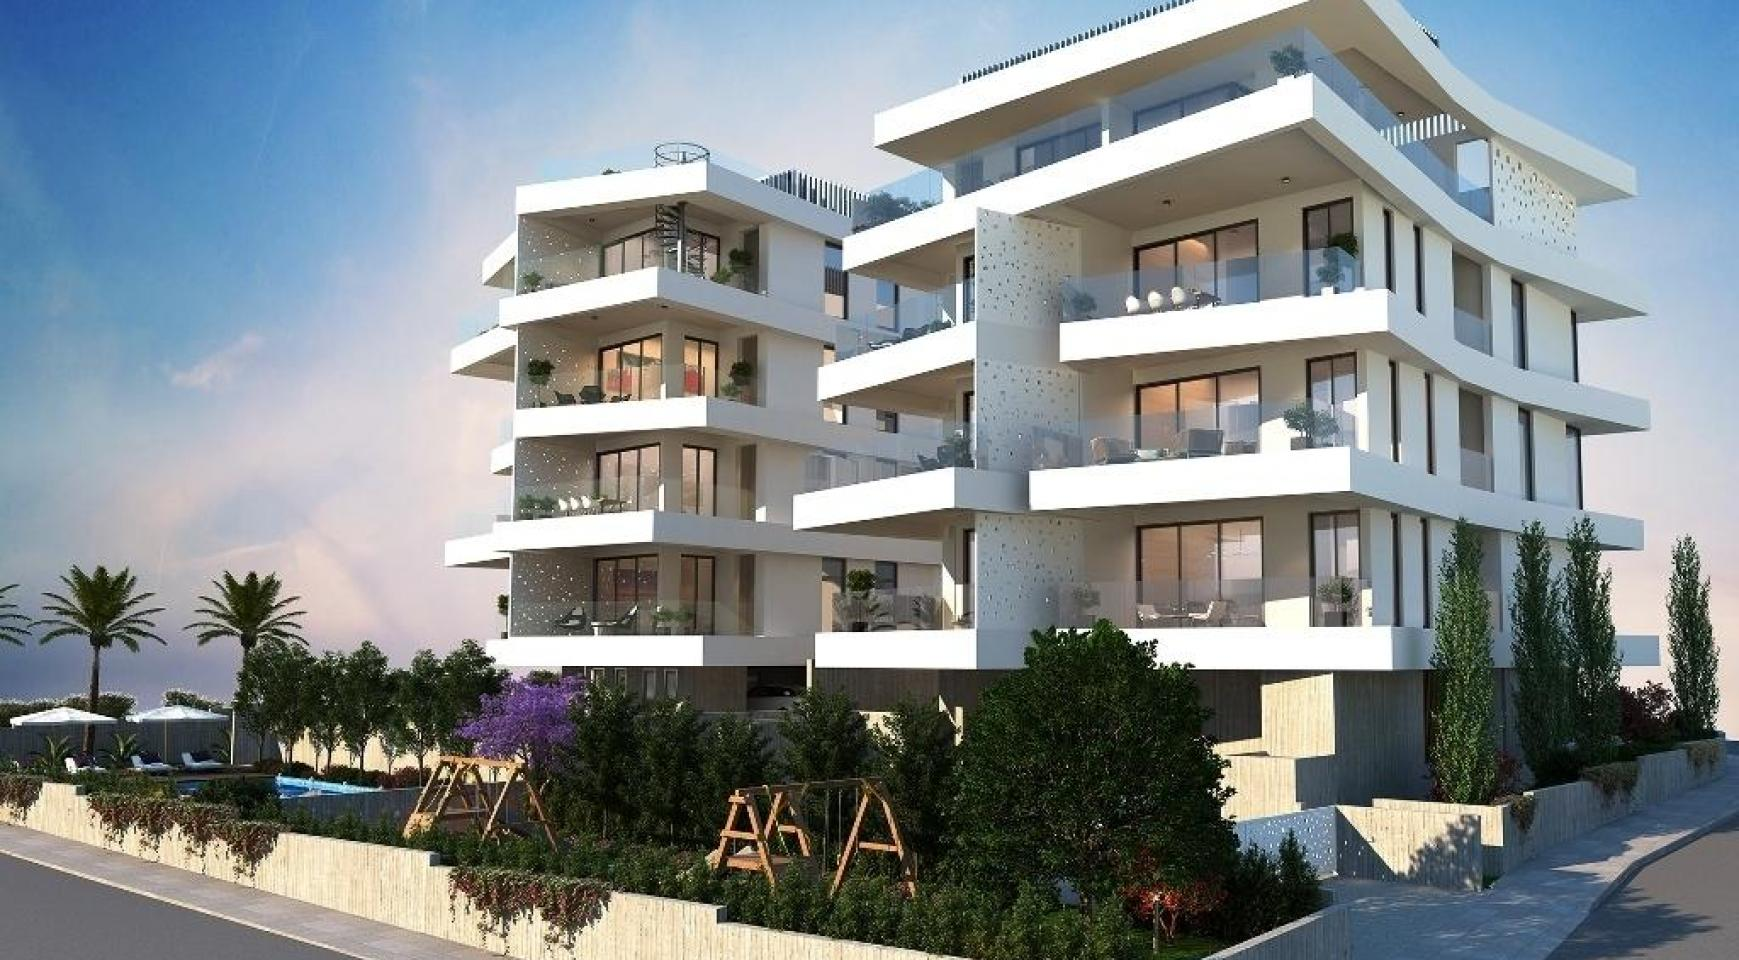 New 2 Bedroom Penthouse in a Contemporary Complex in Germasogeia - 6